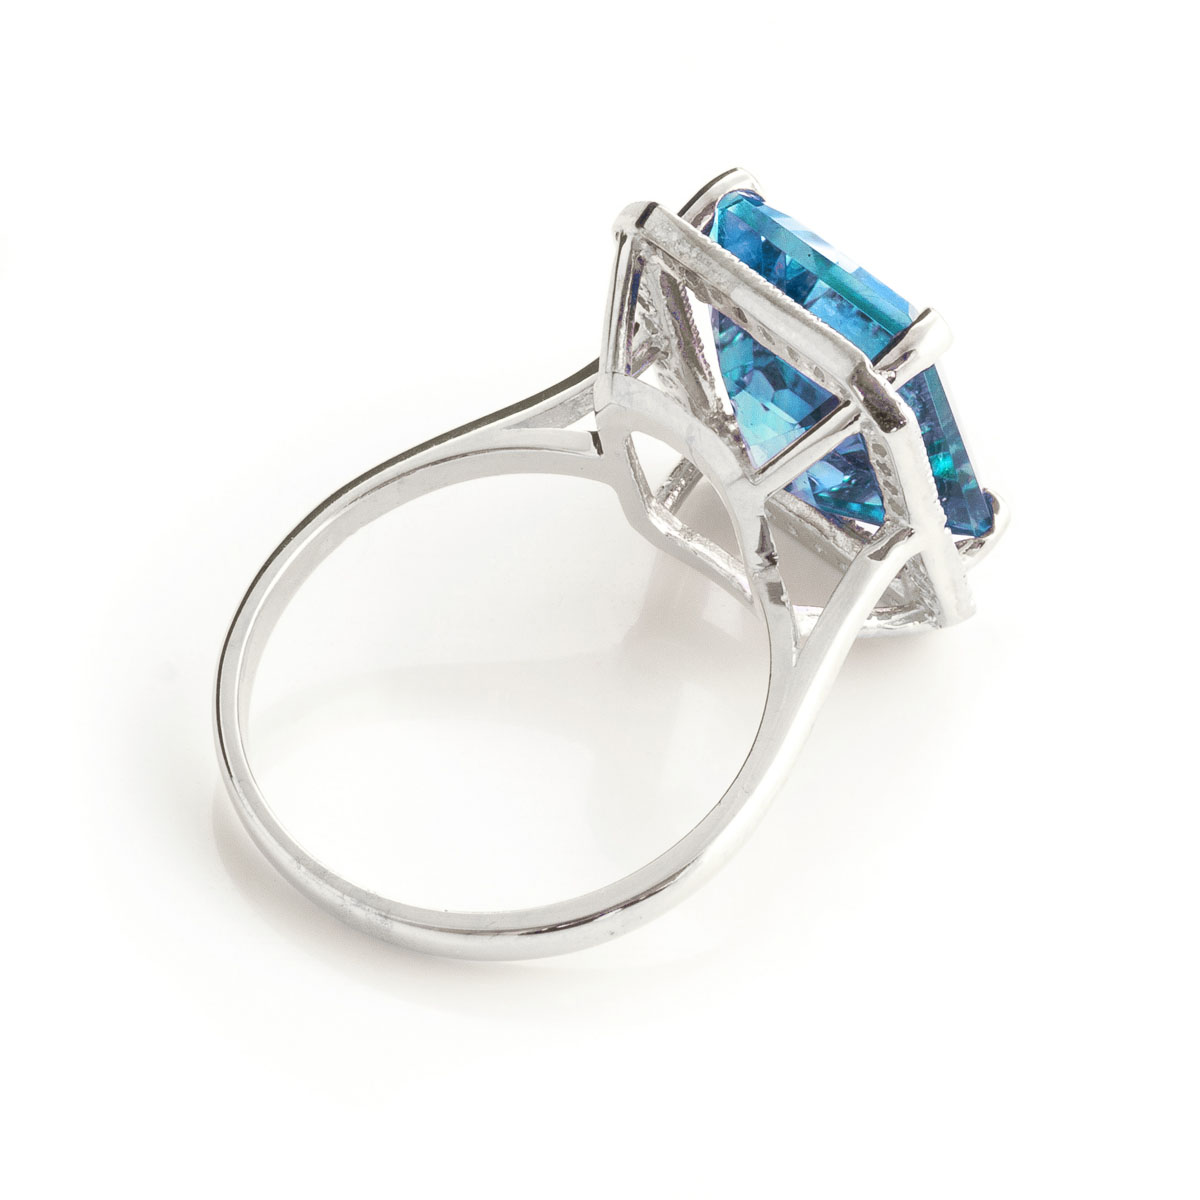 Blue Topaz Halo Ring 7.8 ctw in 9ct White Gold